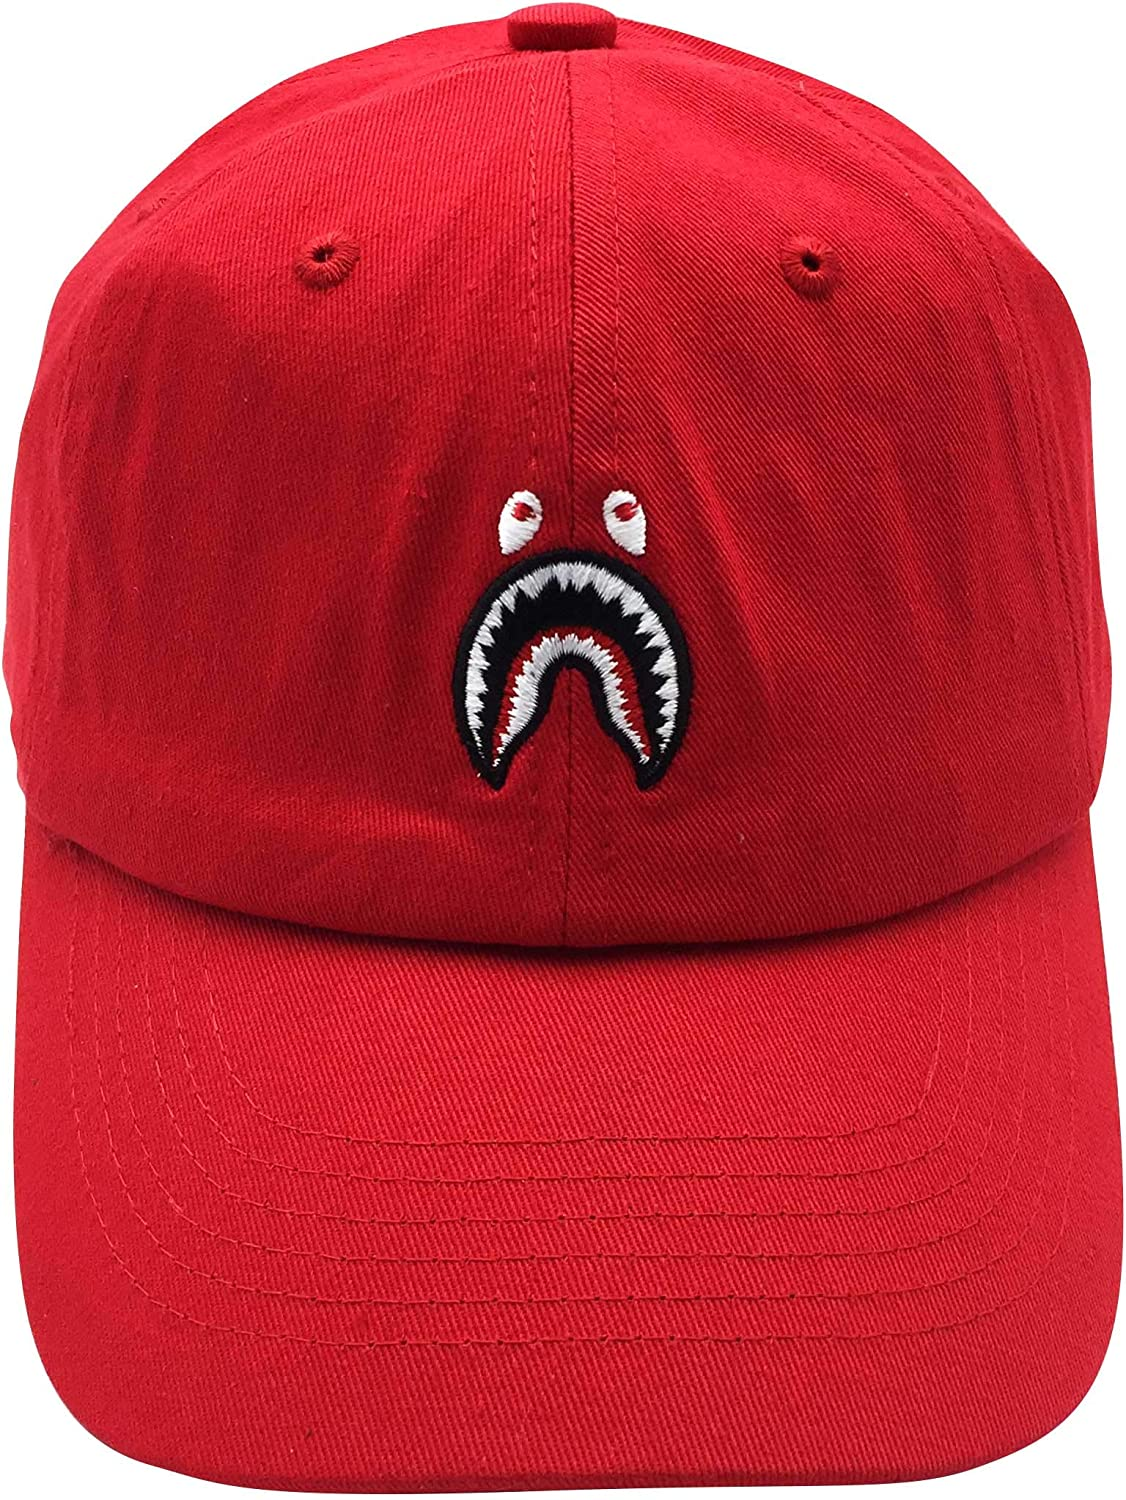 Classic Special price for a limited time Popular products Embroidery Baseball Caps Cotton Shark Hat Adjustable Dad